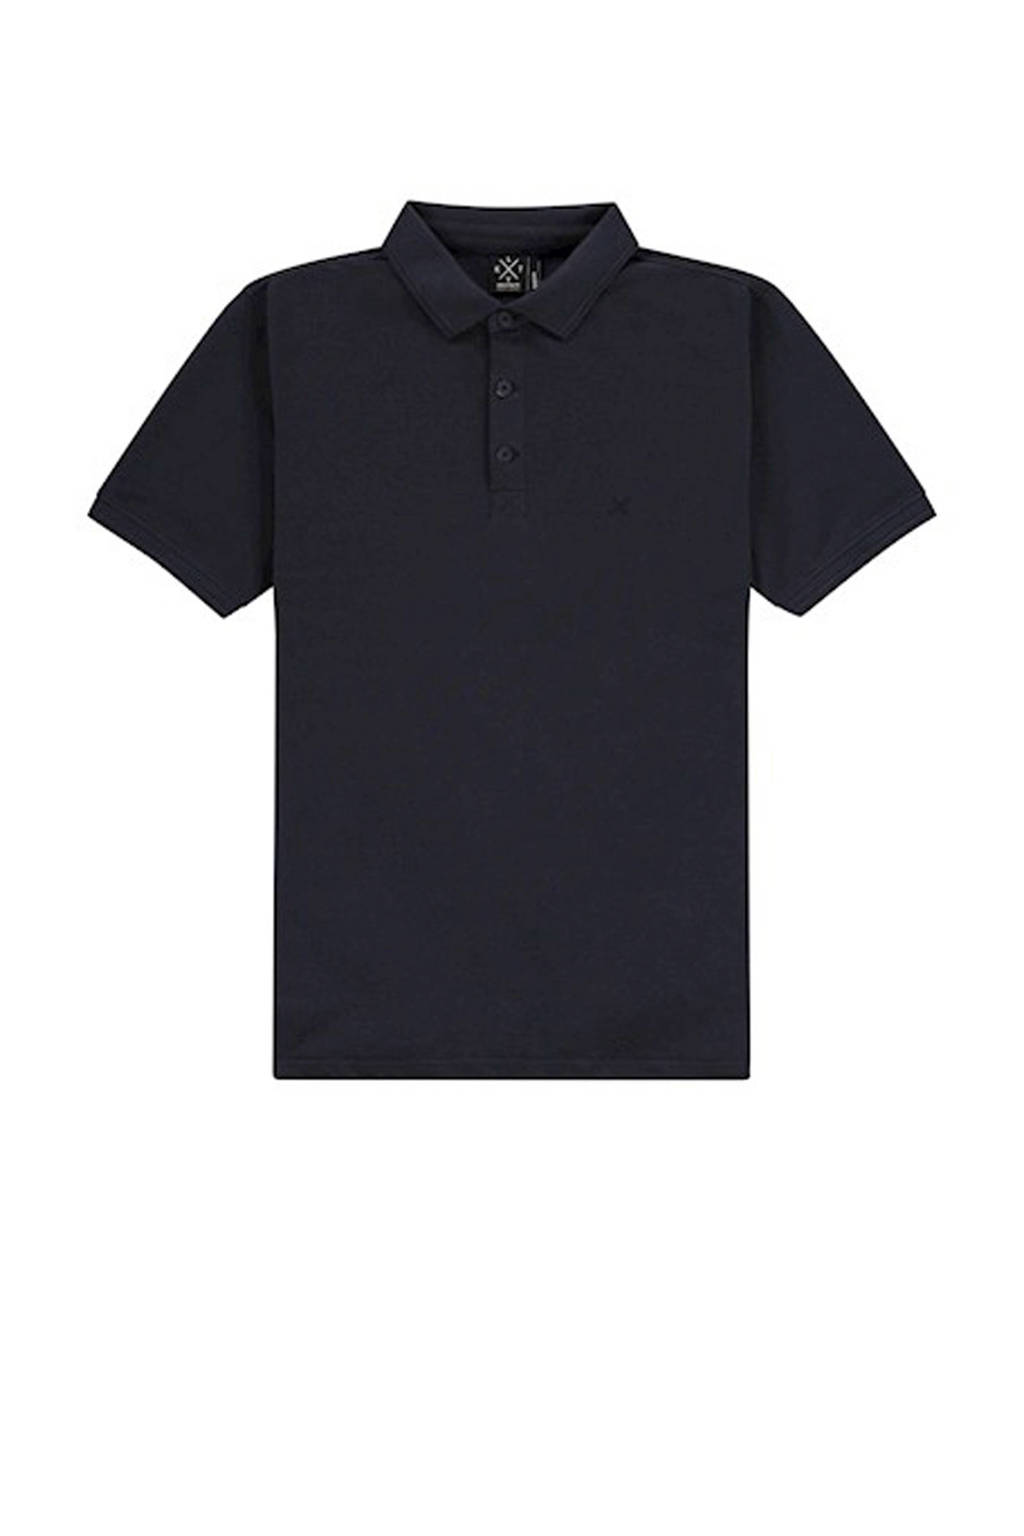 Kultivate regular fit polo donkerblauw, Donkerblauw